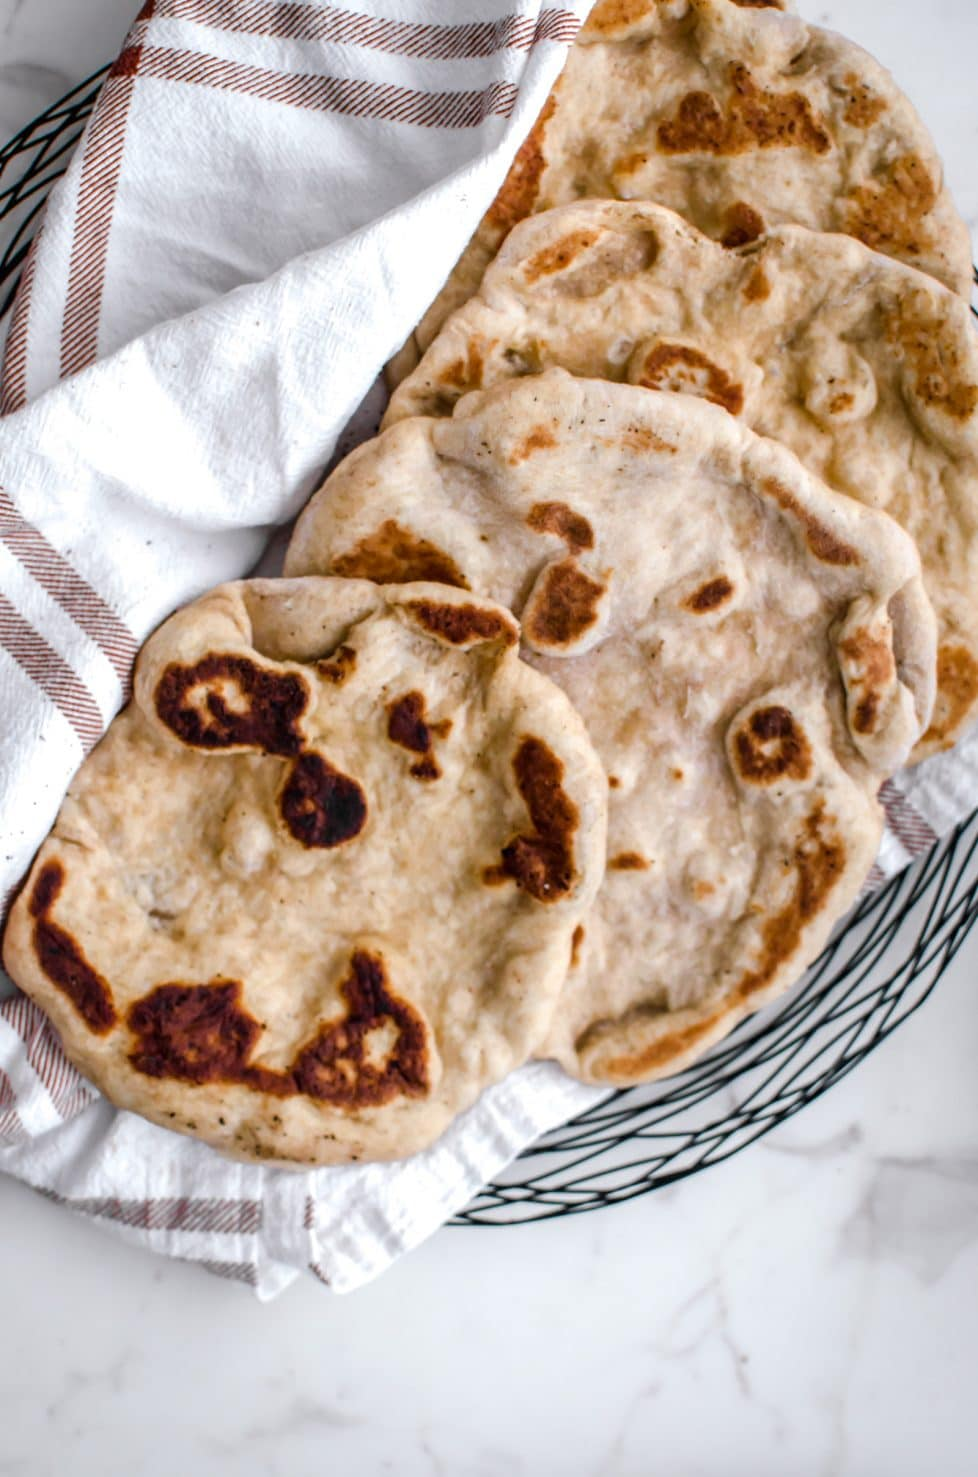 An overhead shot of a plate with pieces of naan and a plaid towel.